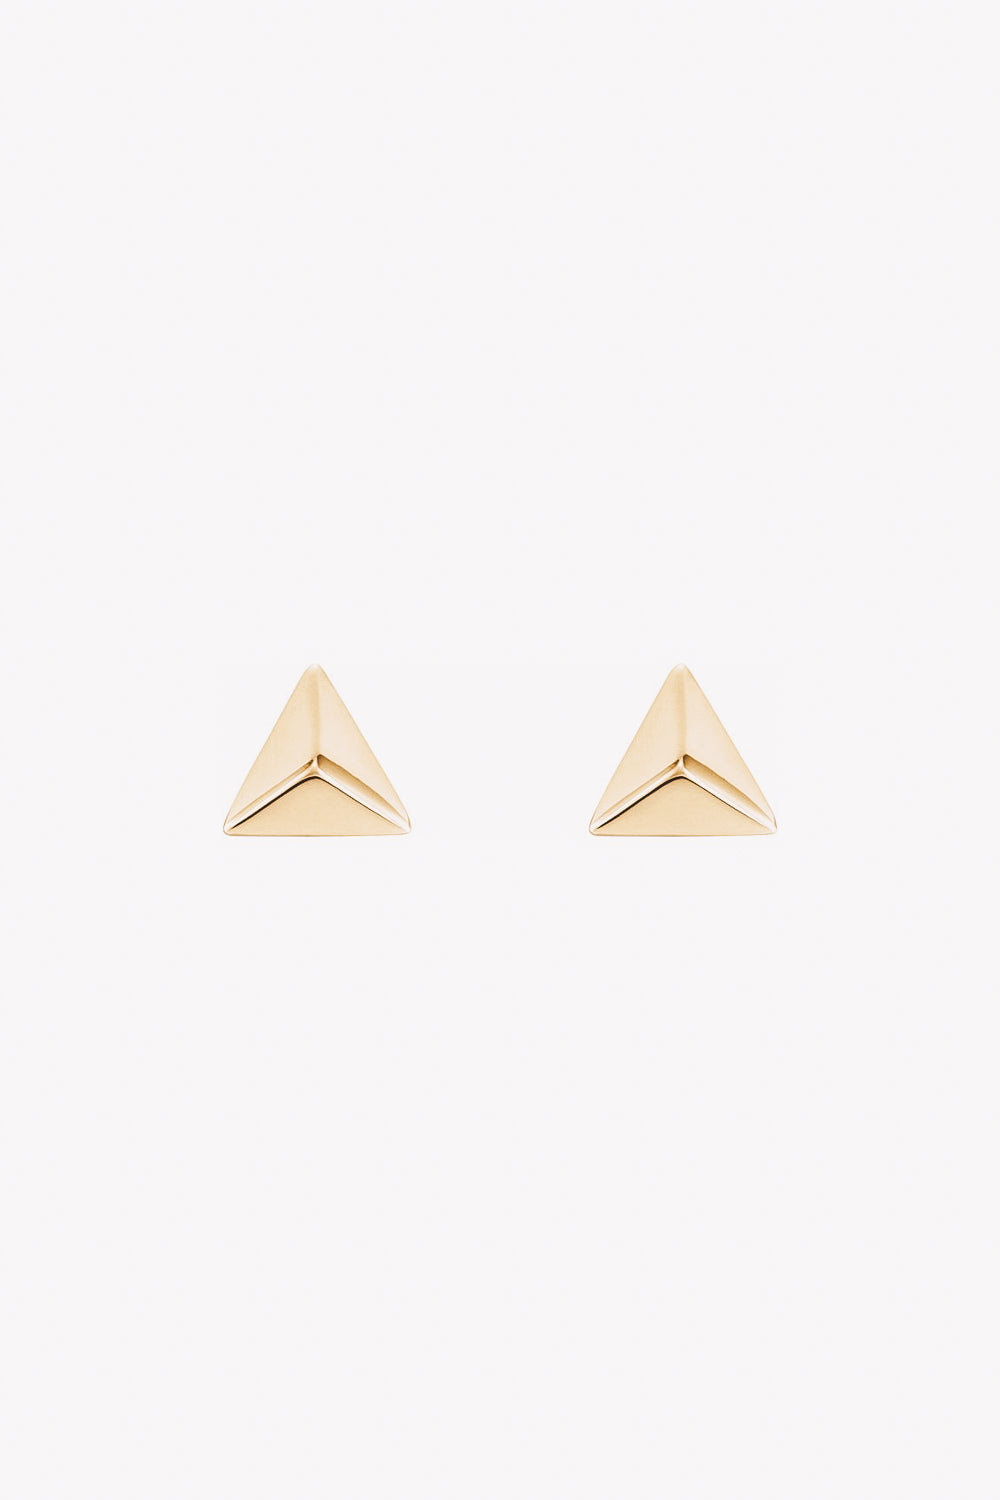 14k gold triangle pyramid stud earrings